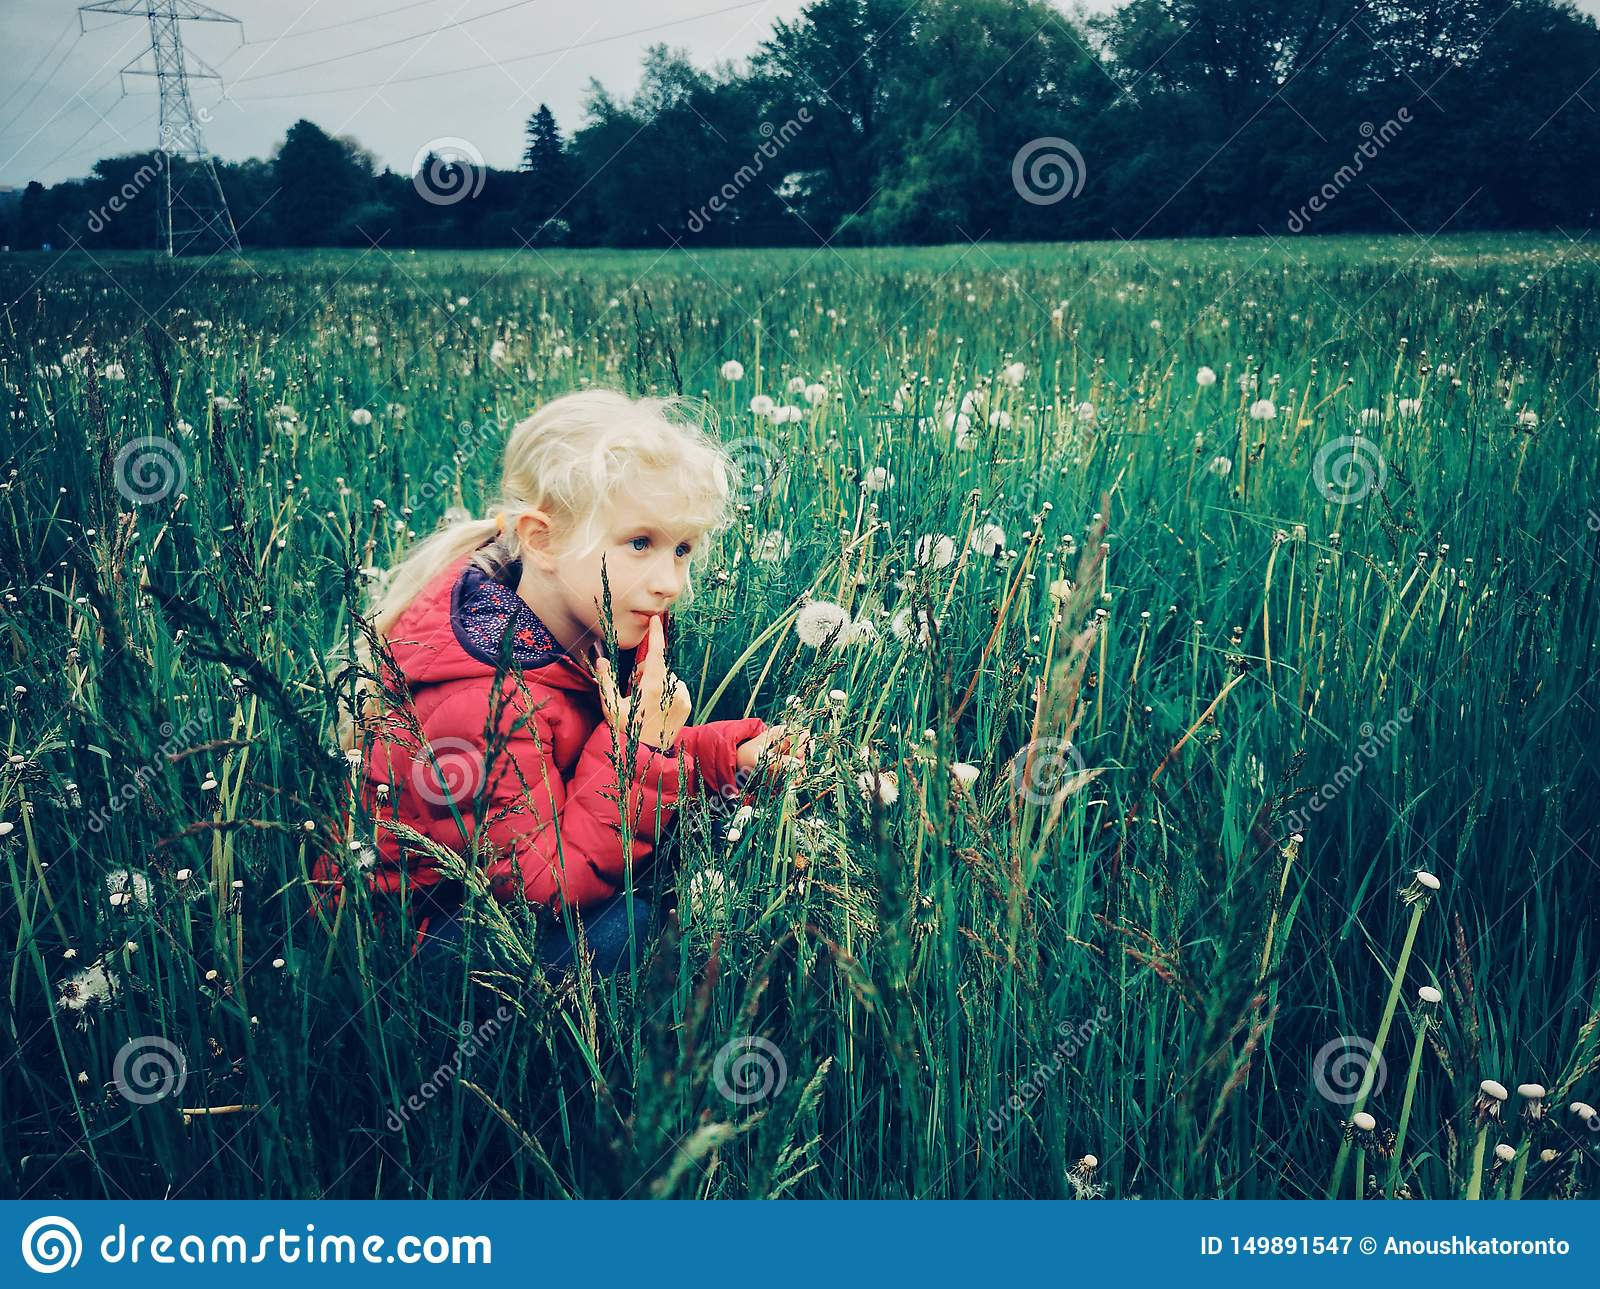 Caucasian girl walking among dandelions and grass on meadow at evening